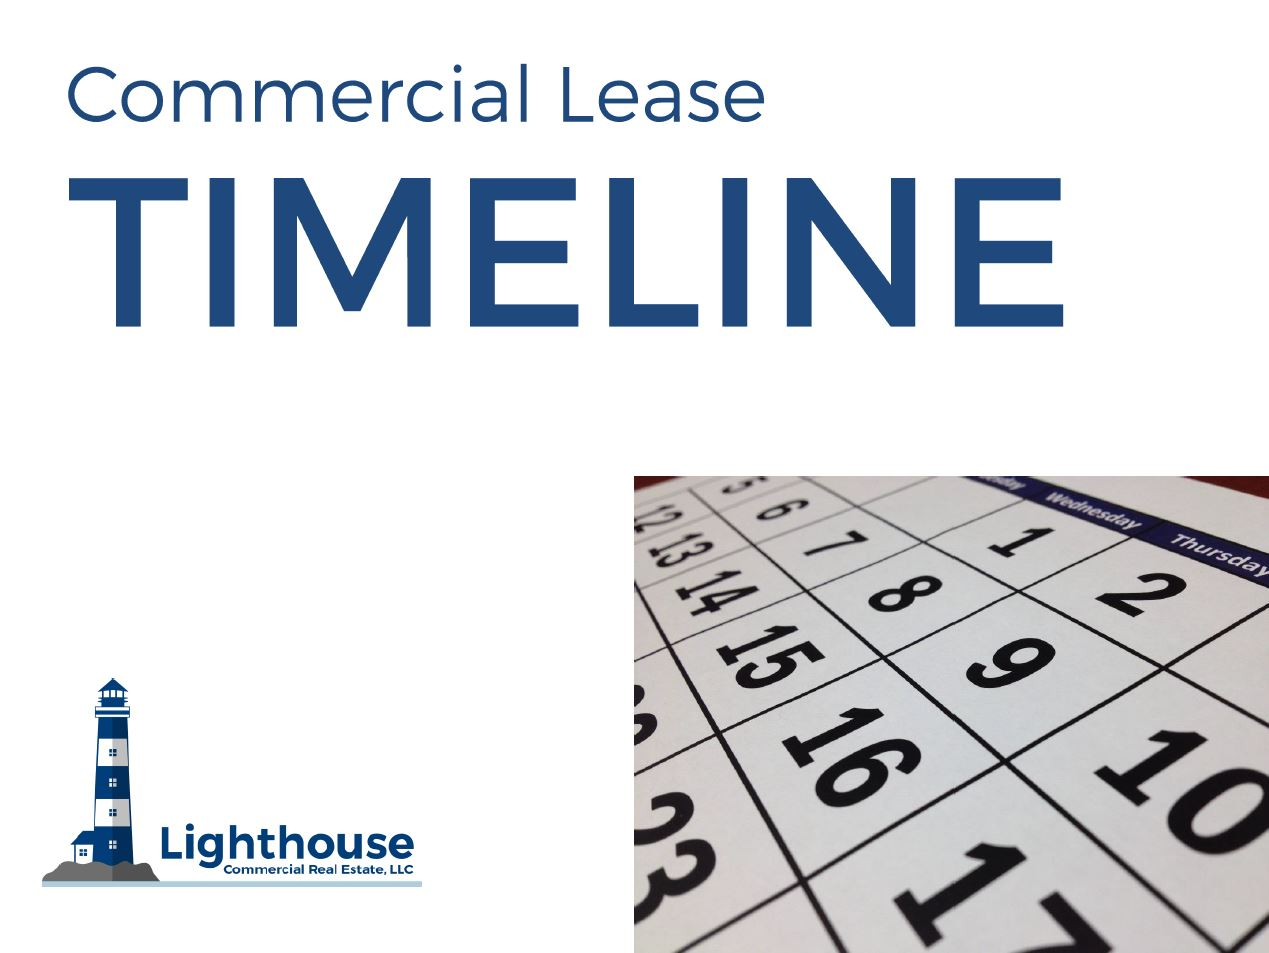 Lighthouse Lease Timeline Checklist